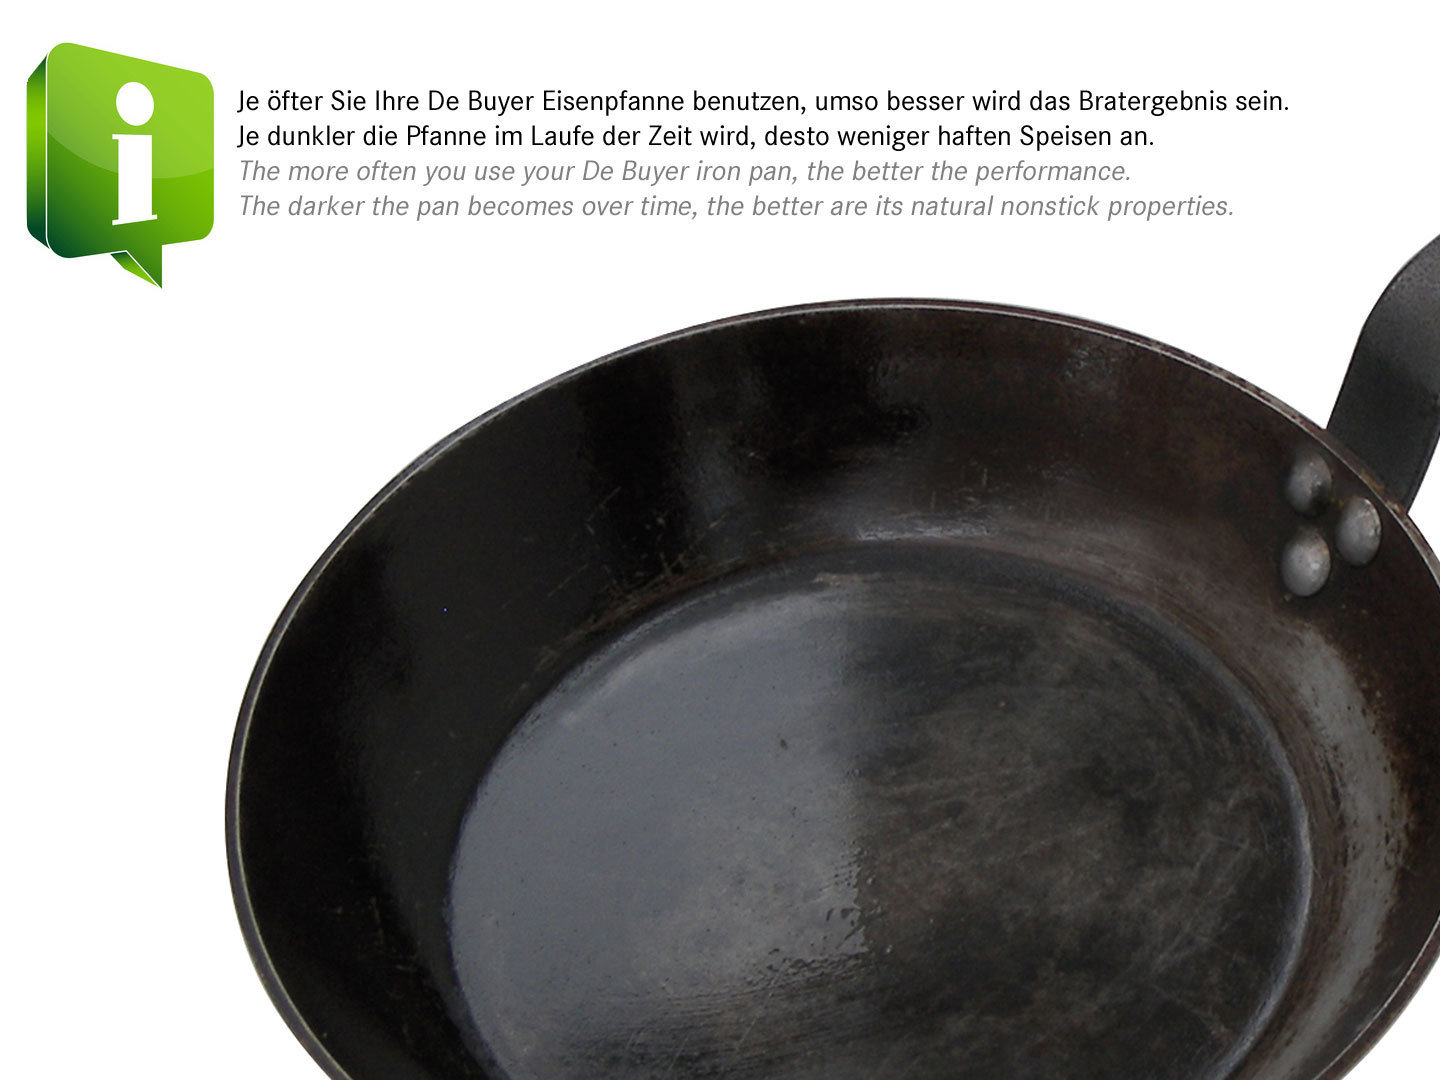 iron crepe pan 30 cm | buy online at pfannenprofis.de